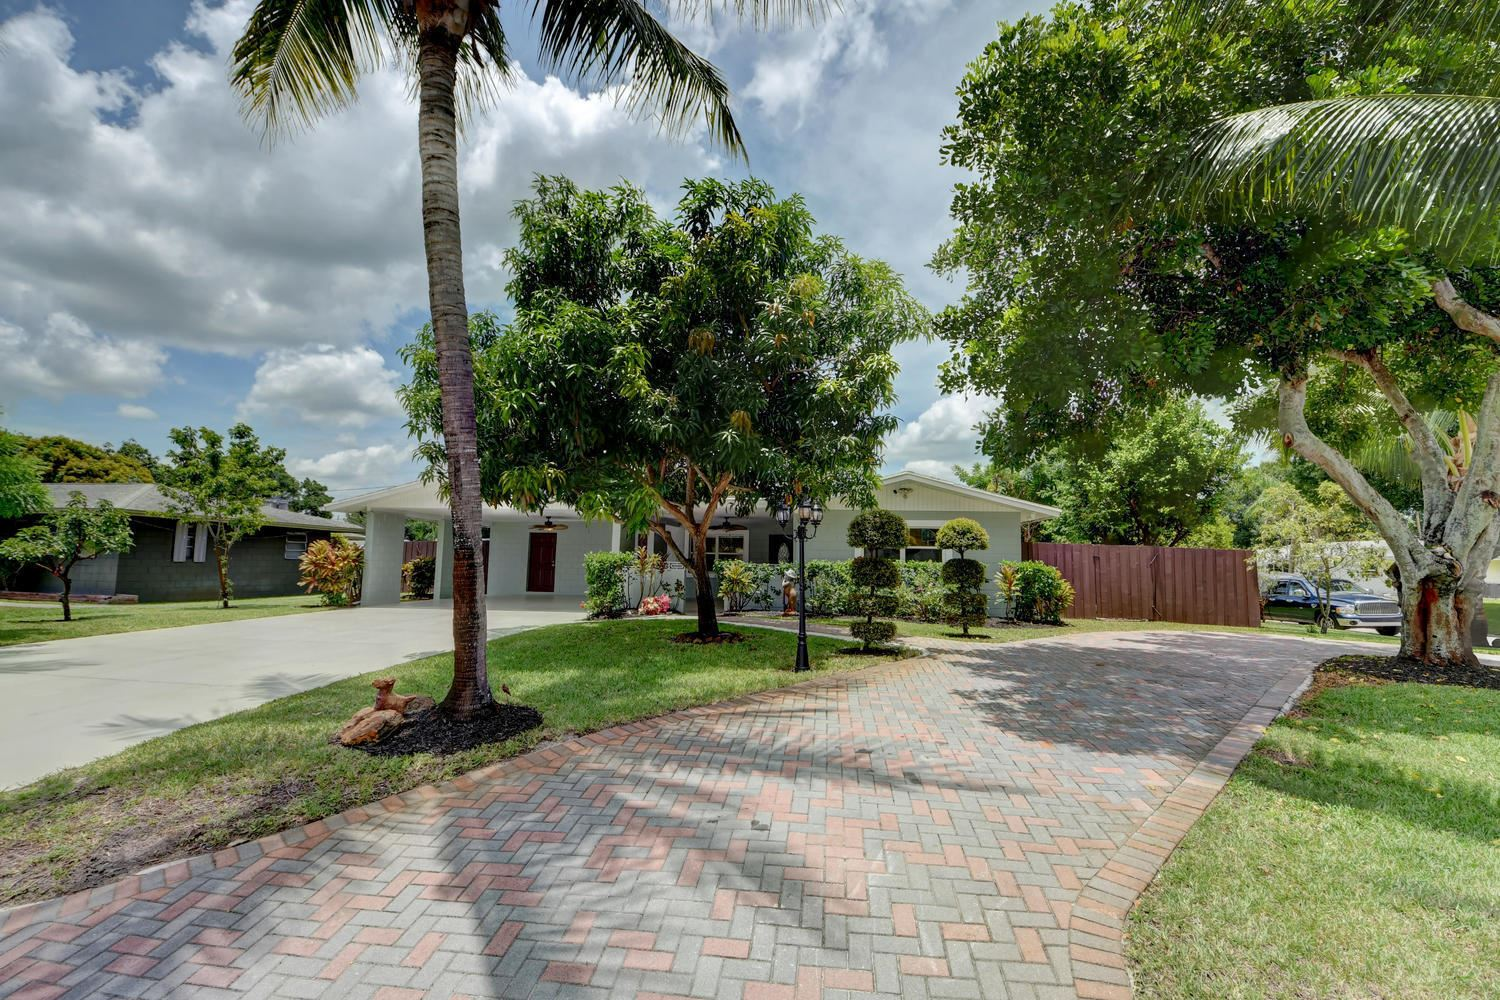 Photo of 2402 Holiday Court, Fort Pierce, FL 34982 (MLS # RX-10638047)